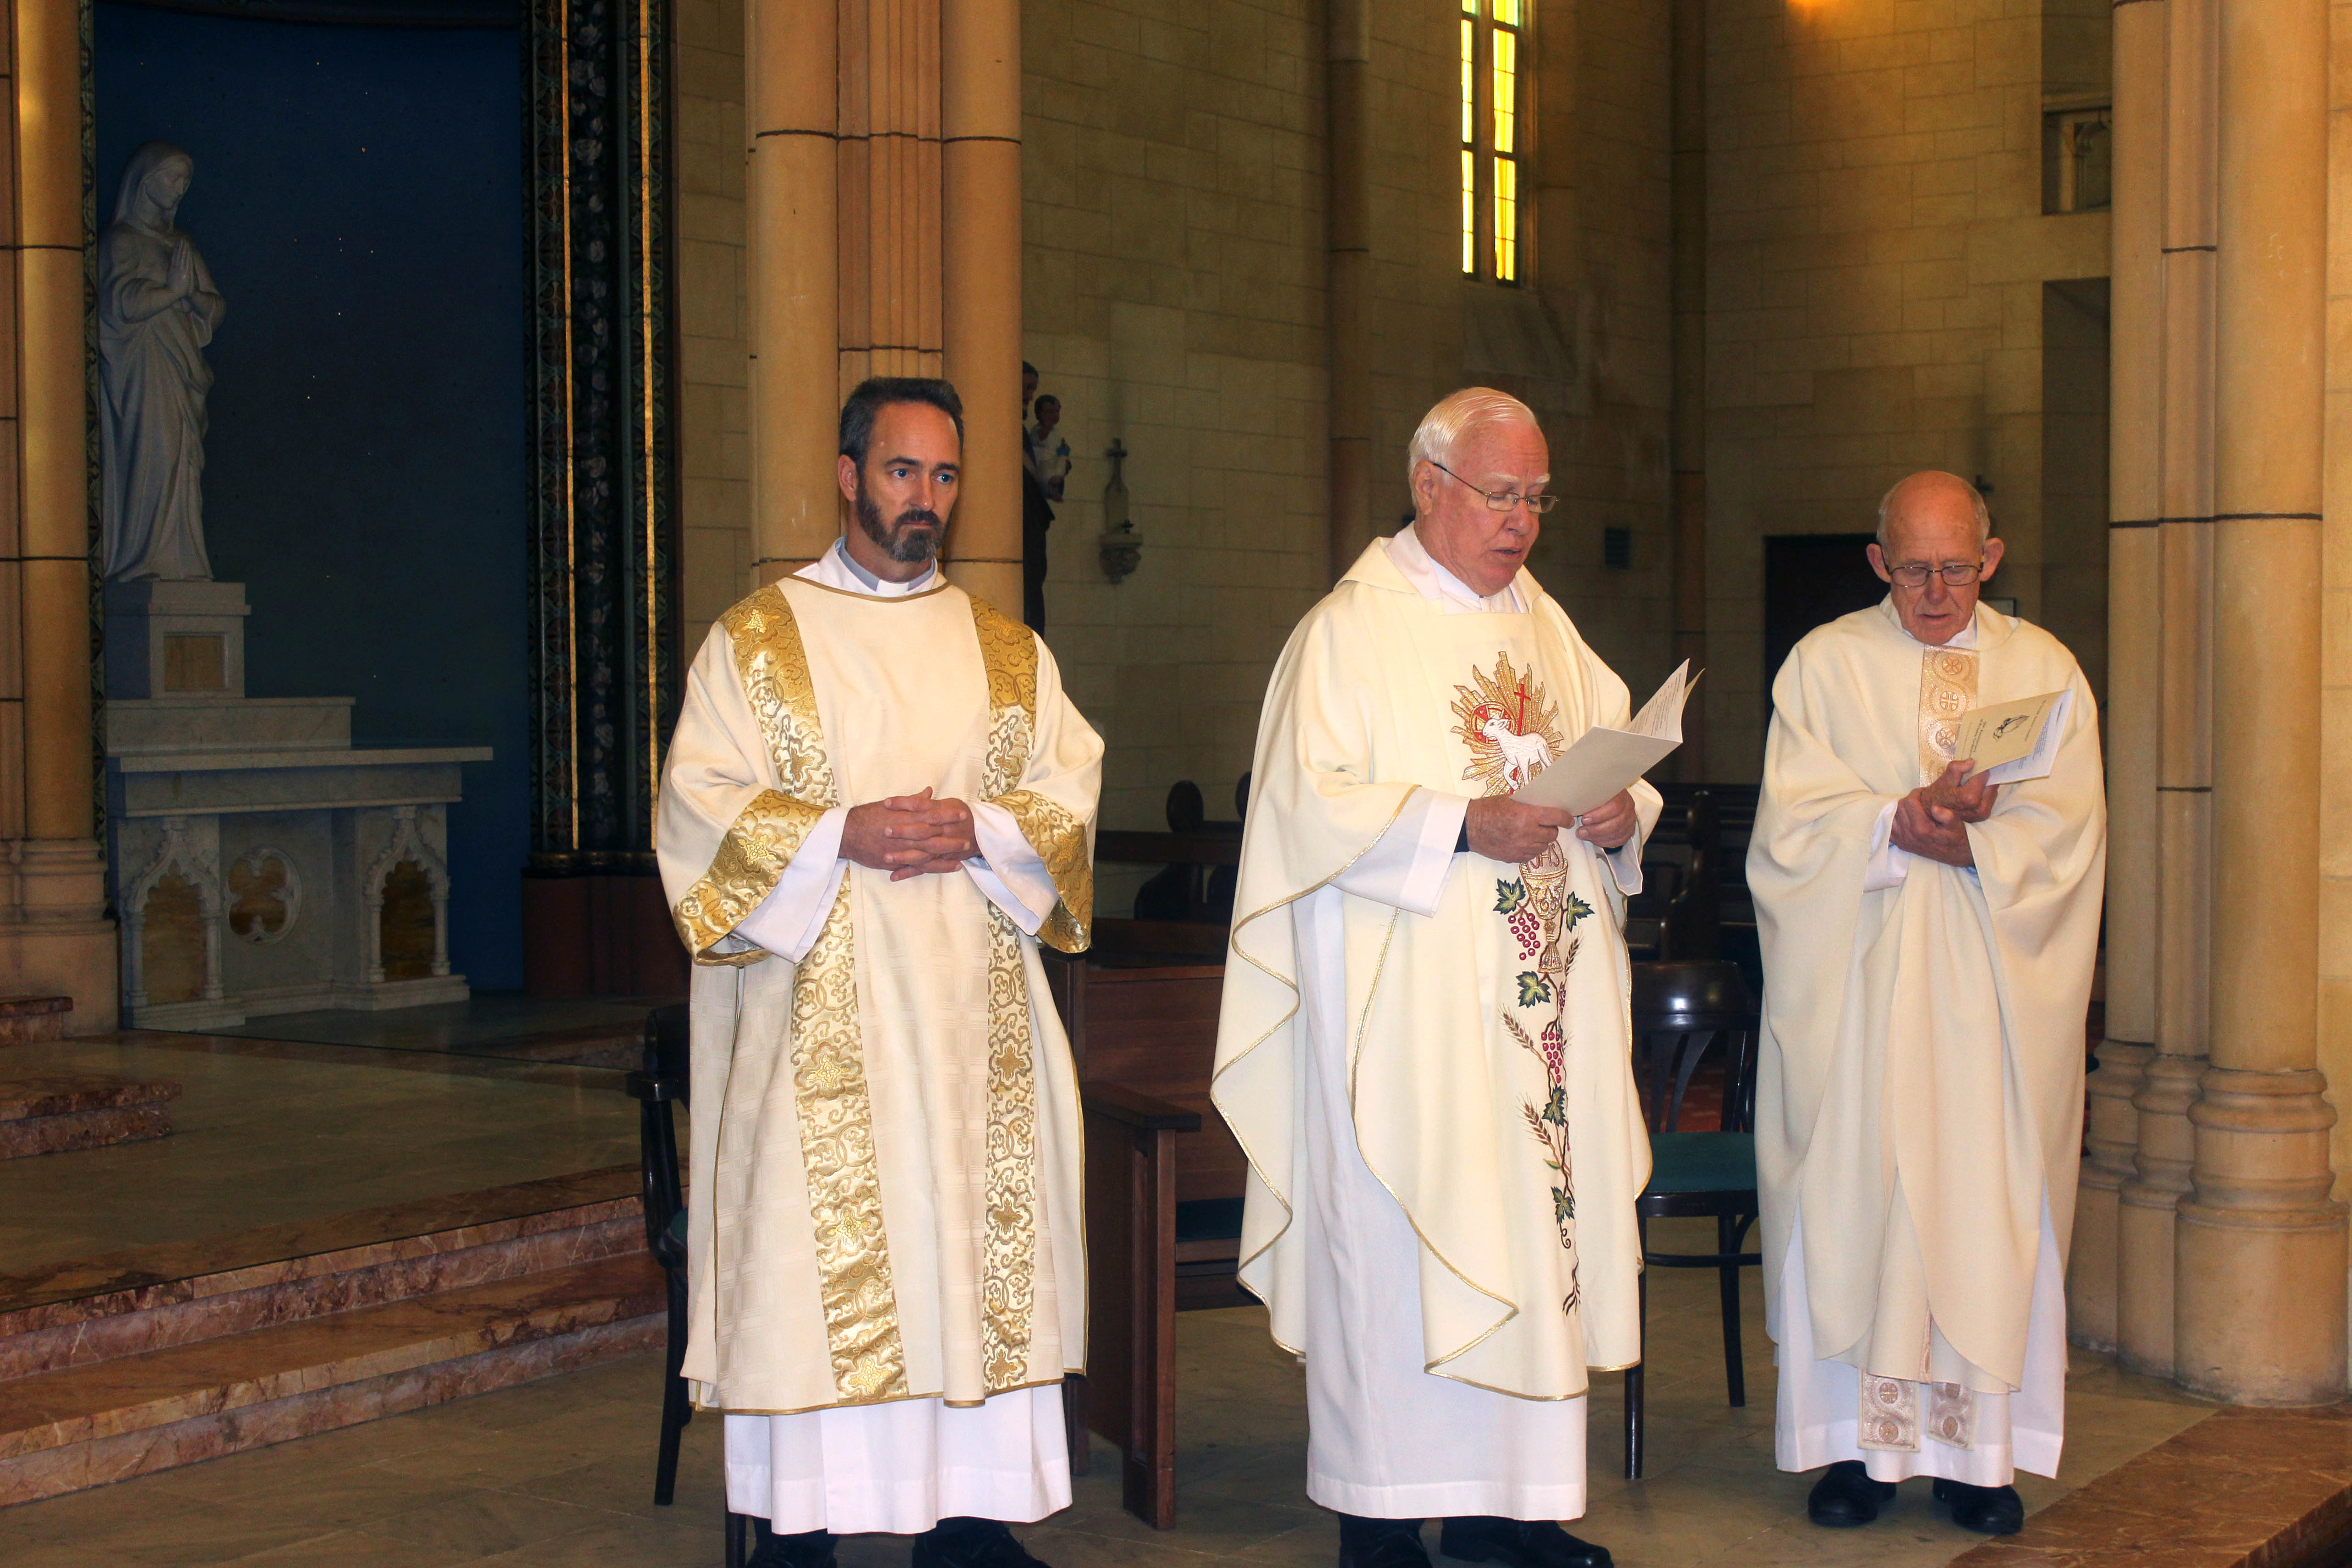 Fr Vincent Conroy with Fr Geoff Aldous and Deacon Aaron Peters at the anniversary Mass. Photo: Supplied.